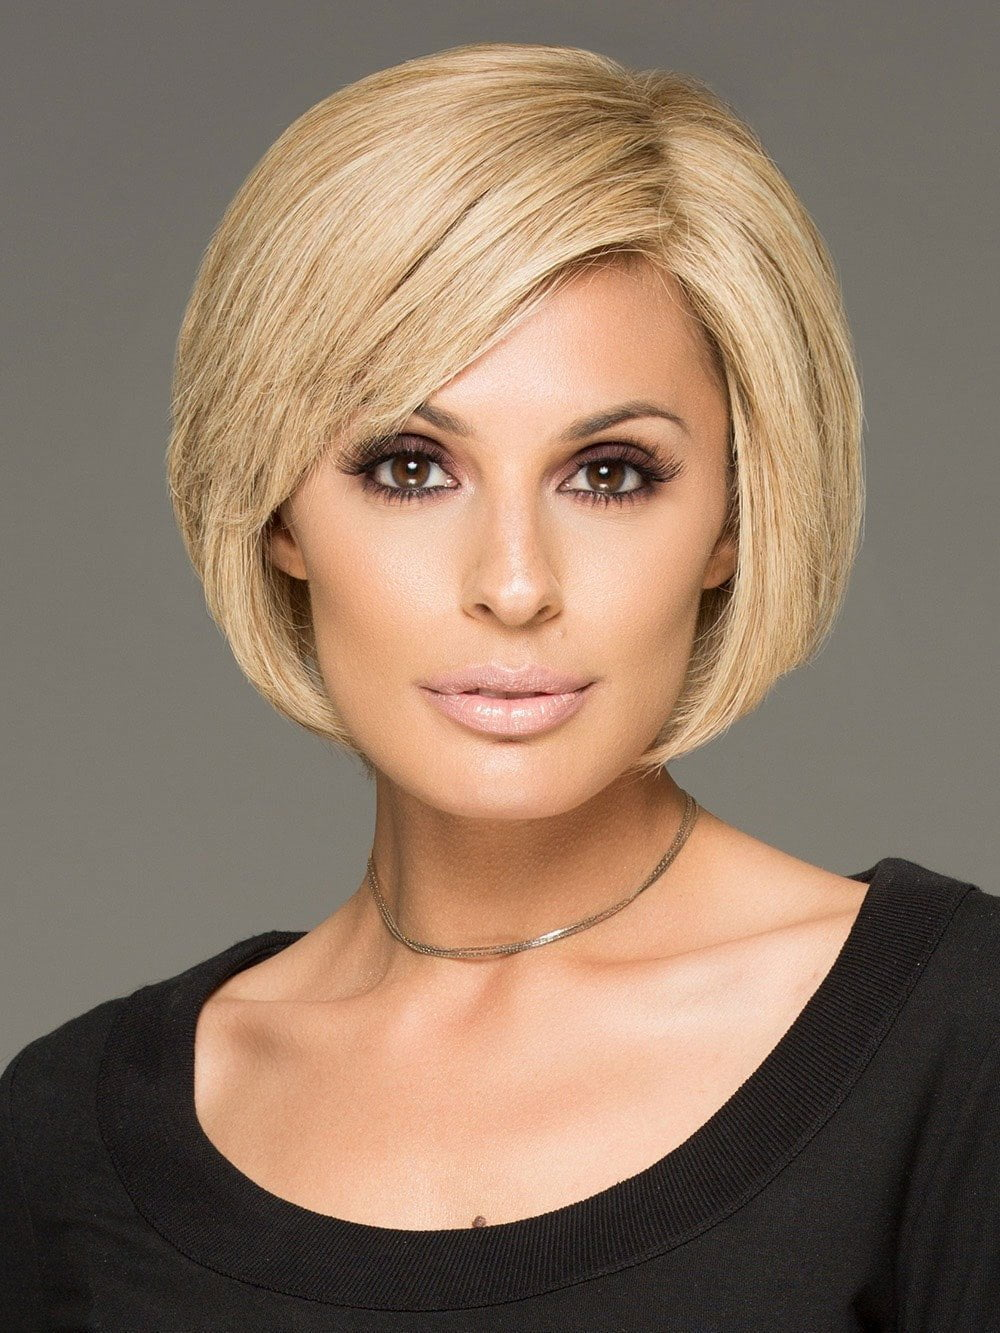 Raquel Welch Success Story is a short trendy wig, so chic!